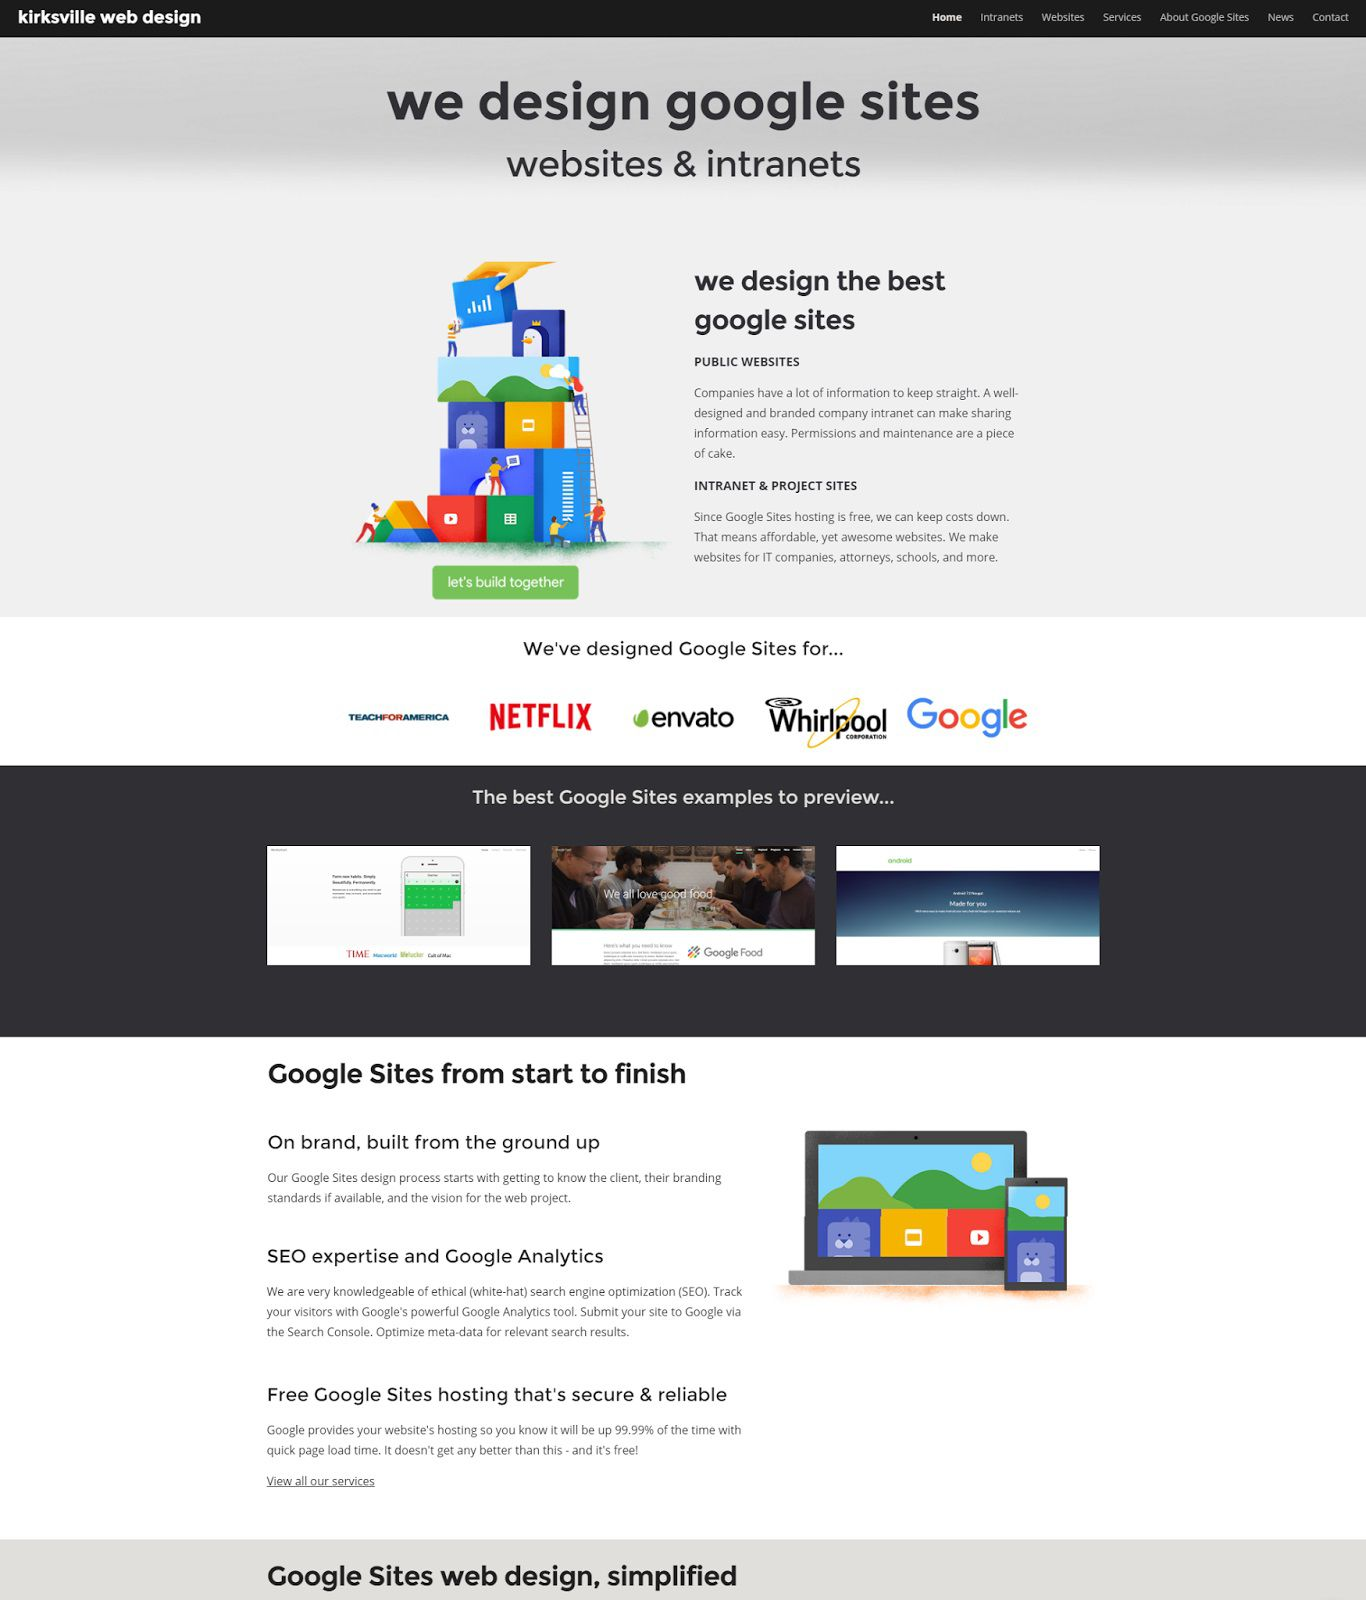 001 Excellent Free Google Site Template High Resolution  Templates Download New 2020Full